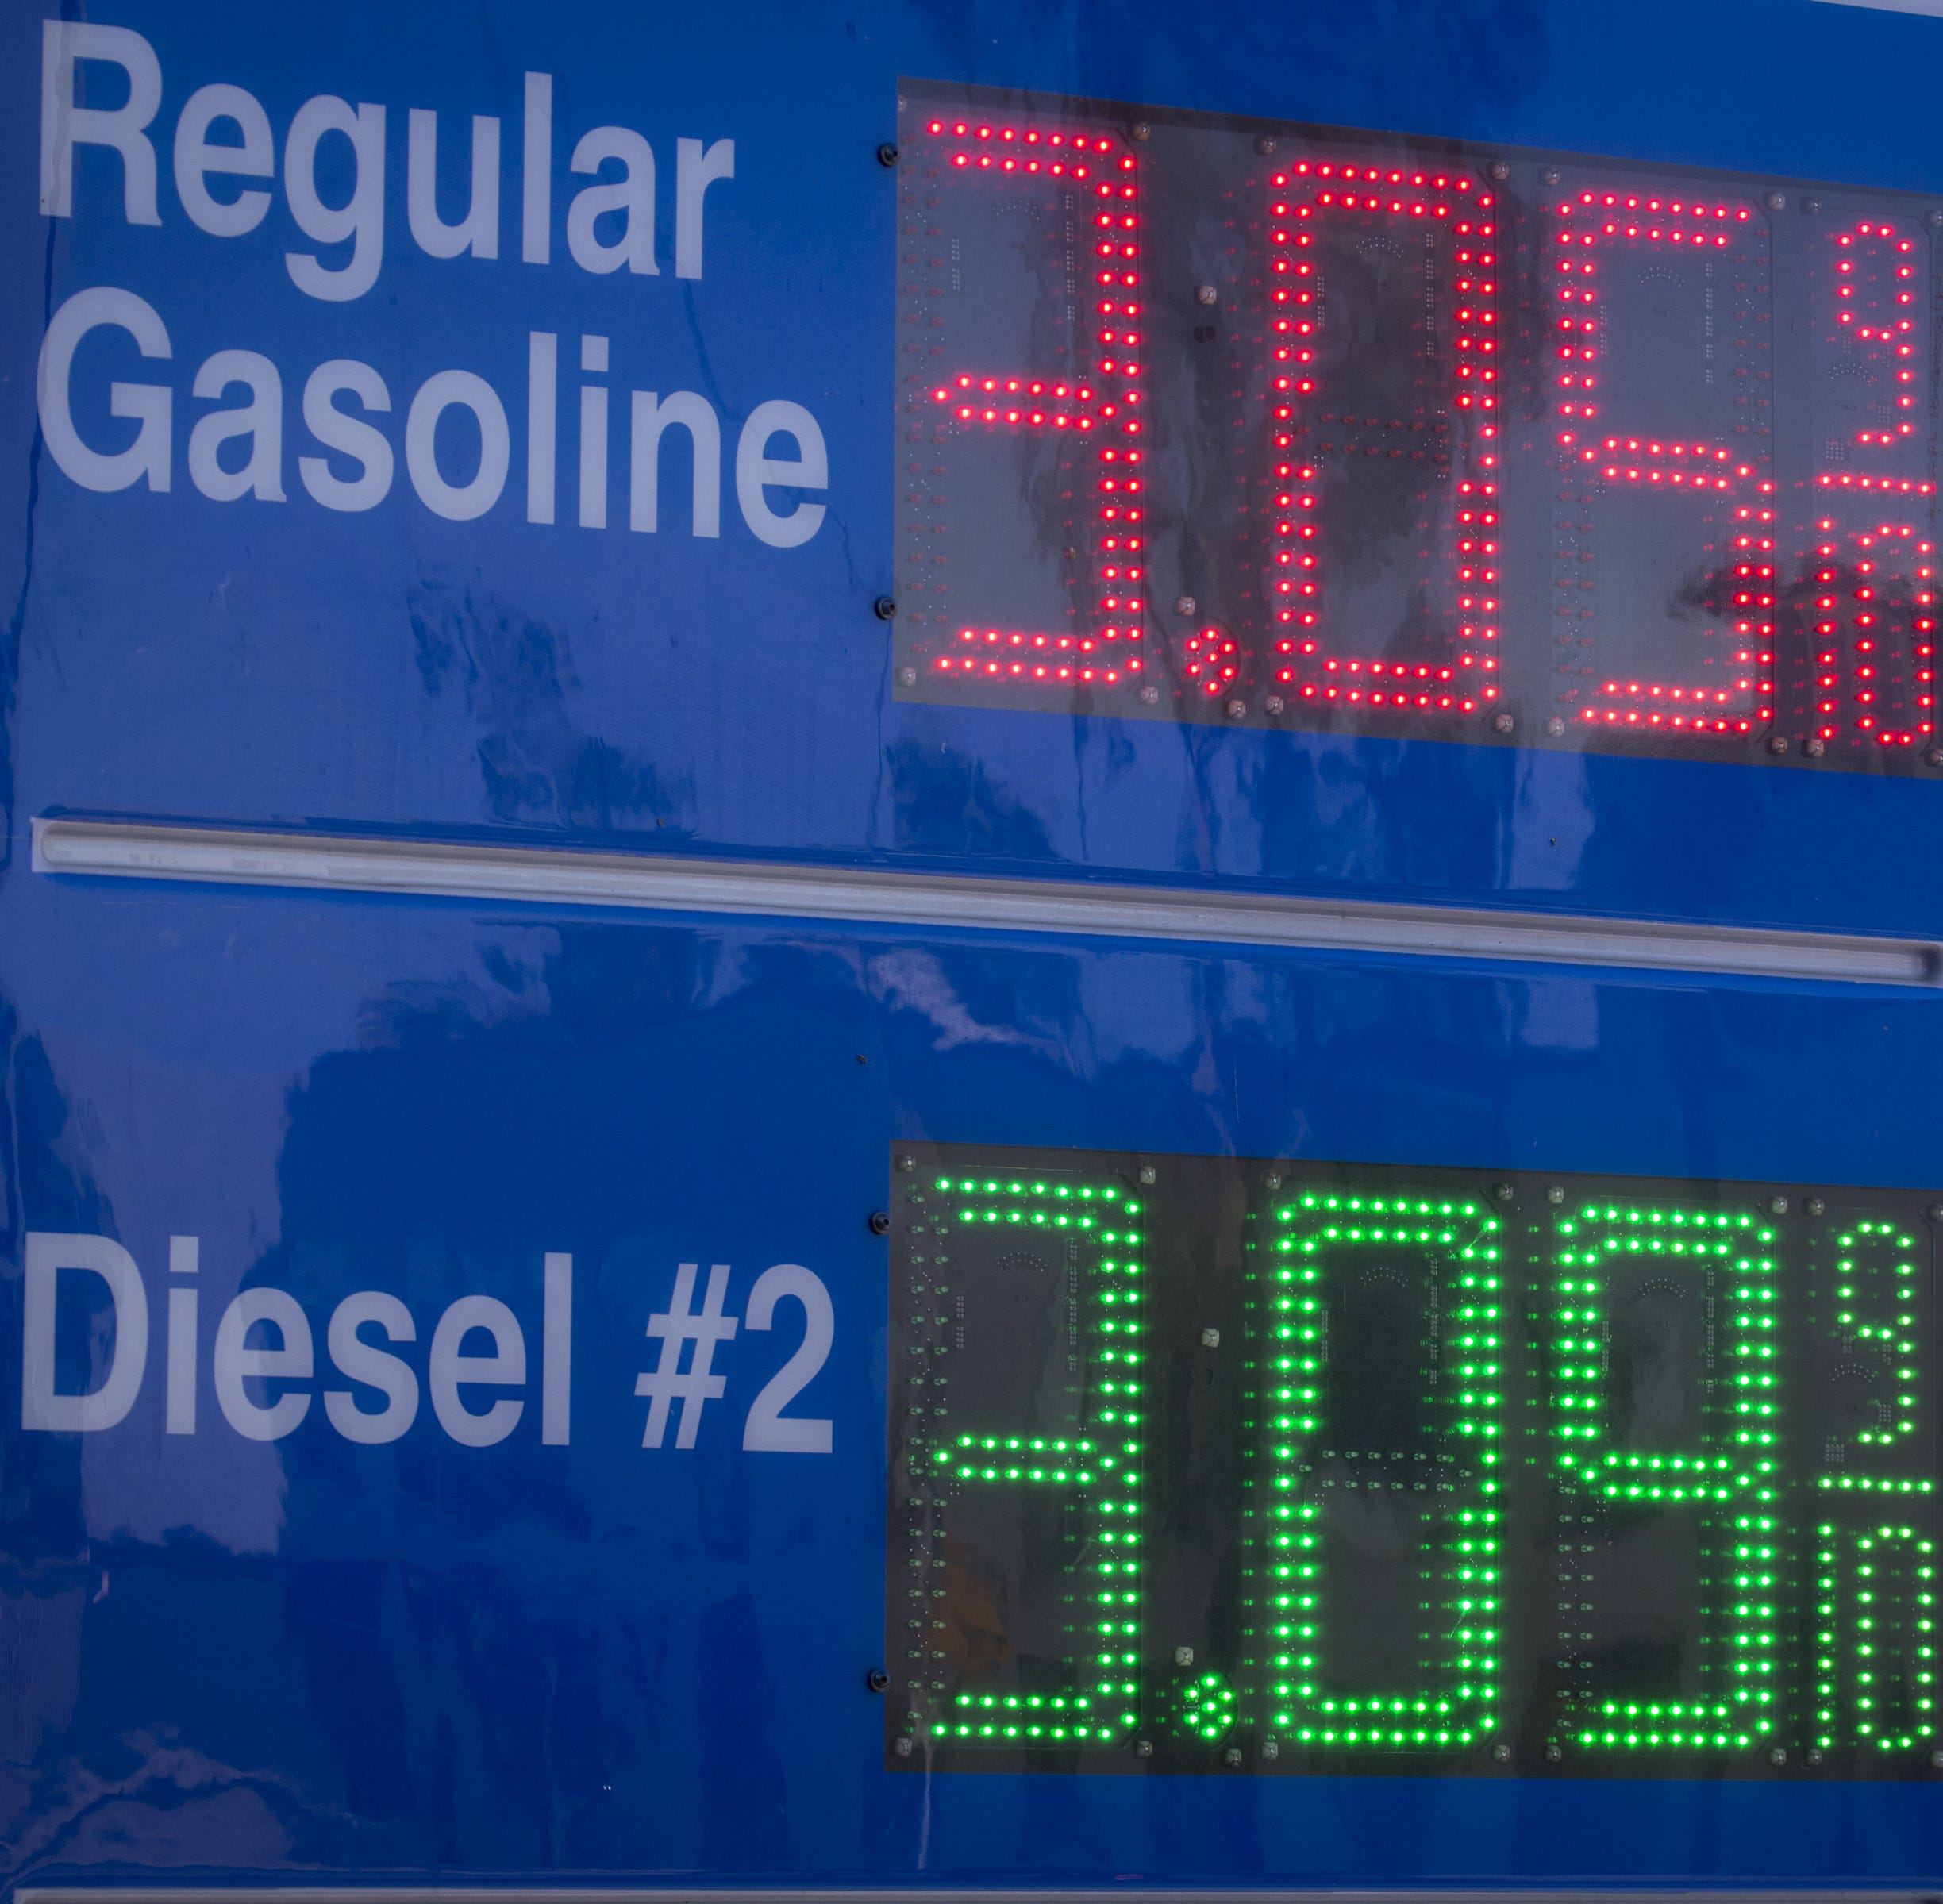 Gas prices are rising in Arizona, but what's too high? AAA knows the breaking point